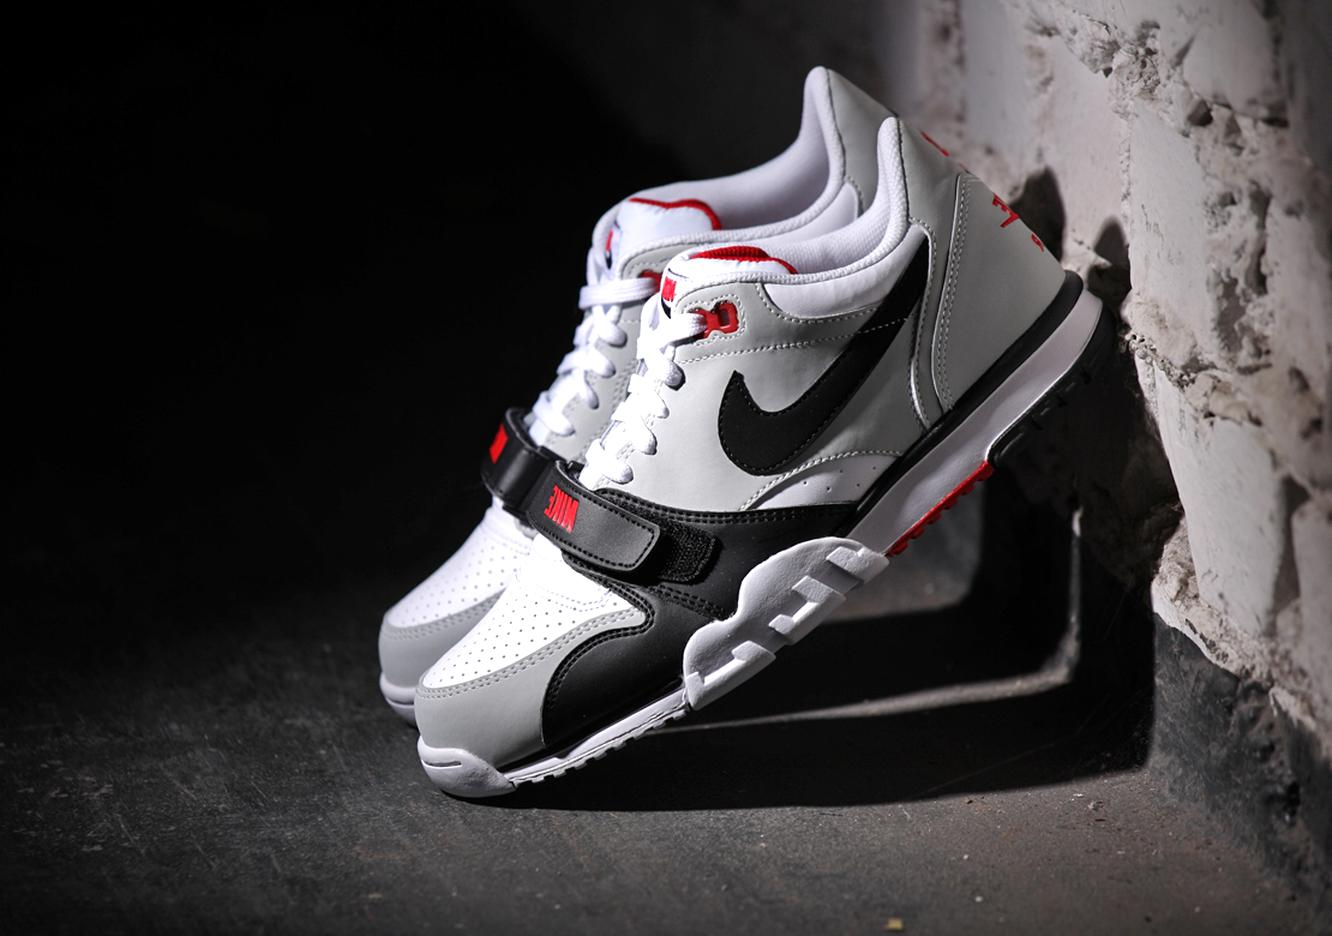 Nike Air Trainer Low d'occasion